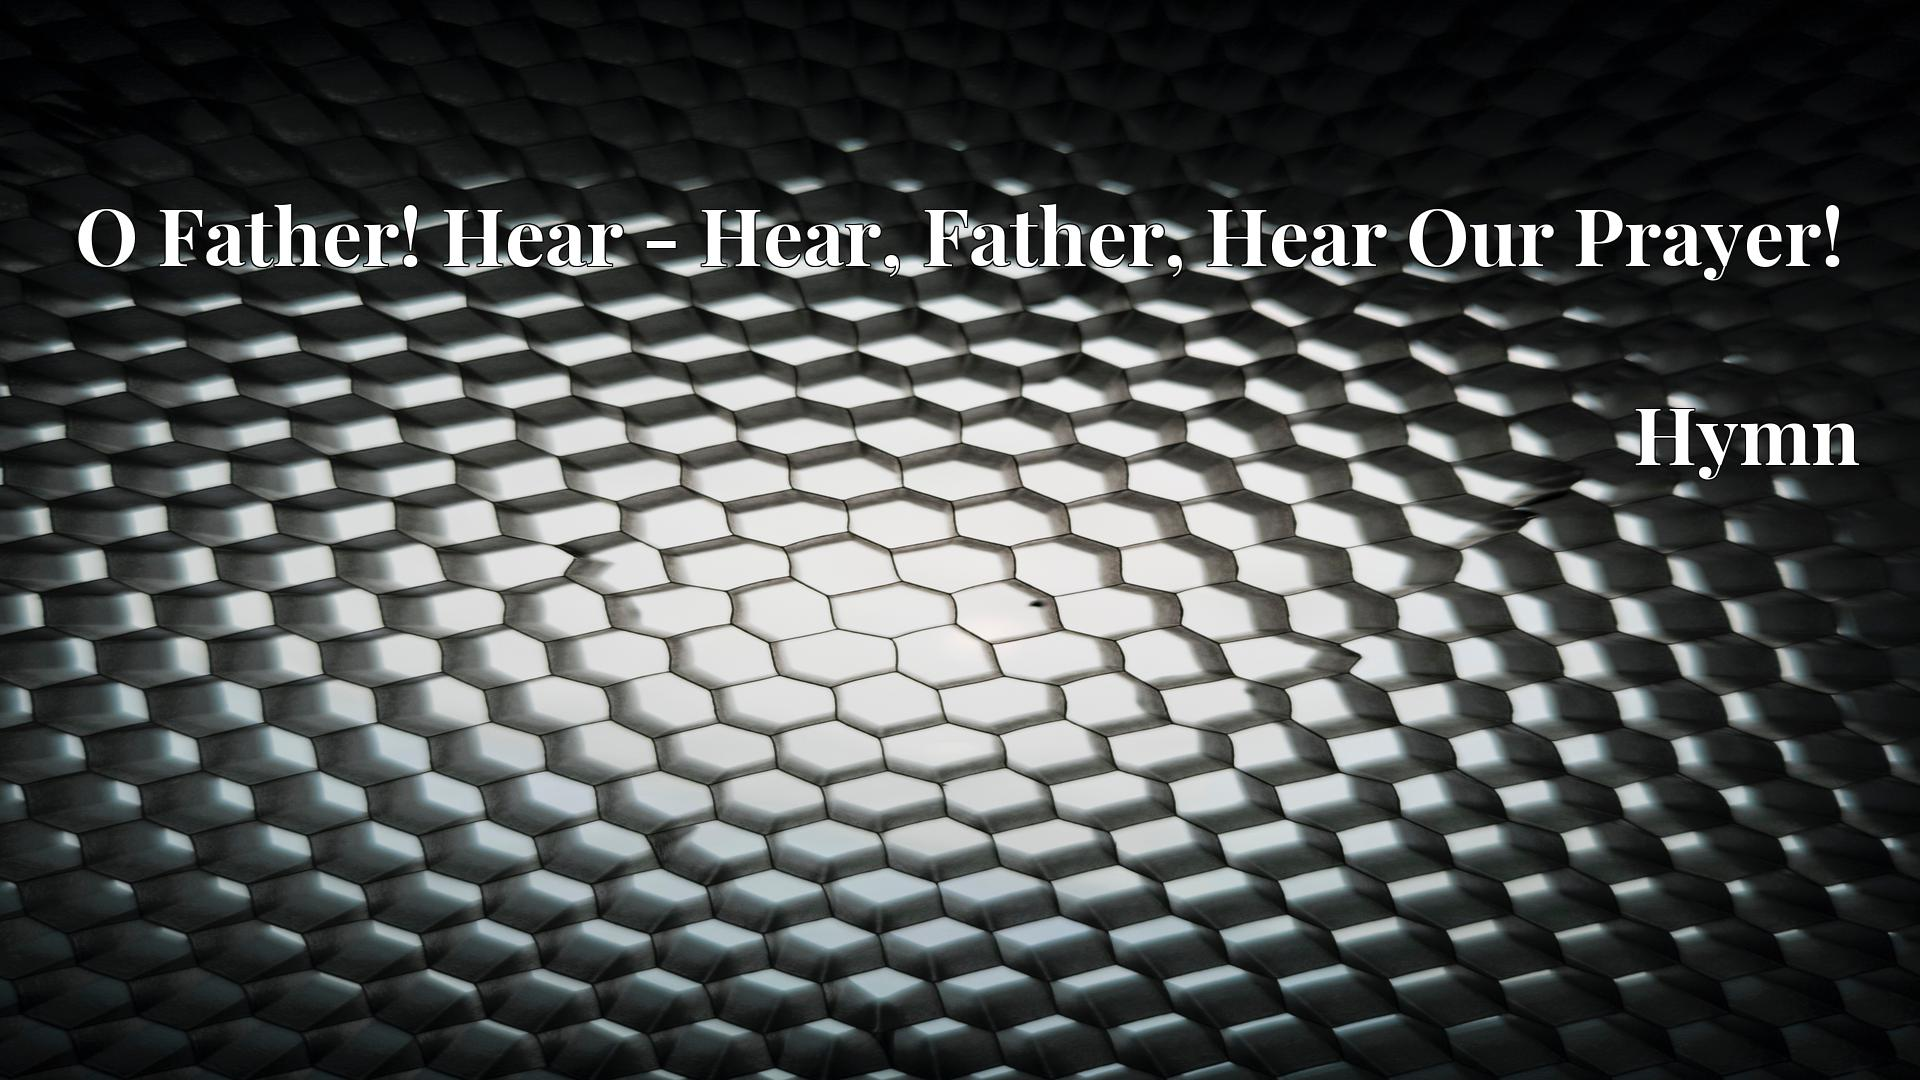 O Father! Hear - Hear, Father, Hear Our Prayer! - Hymn